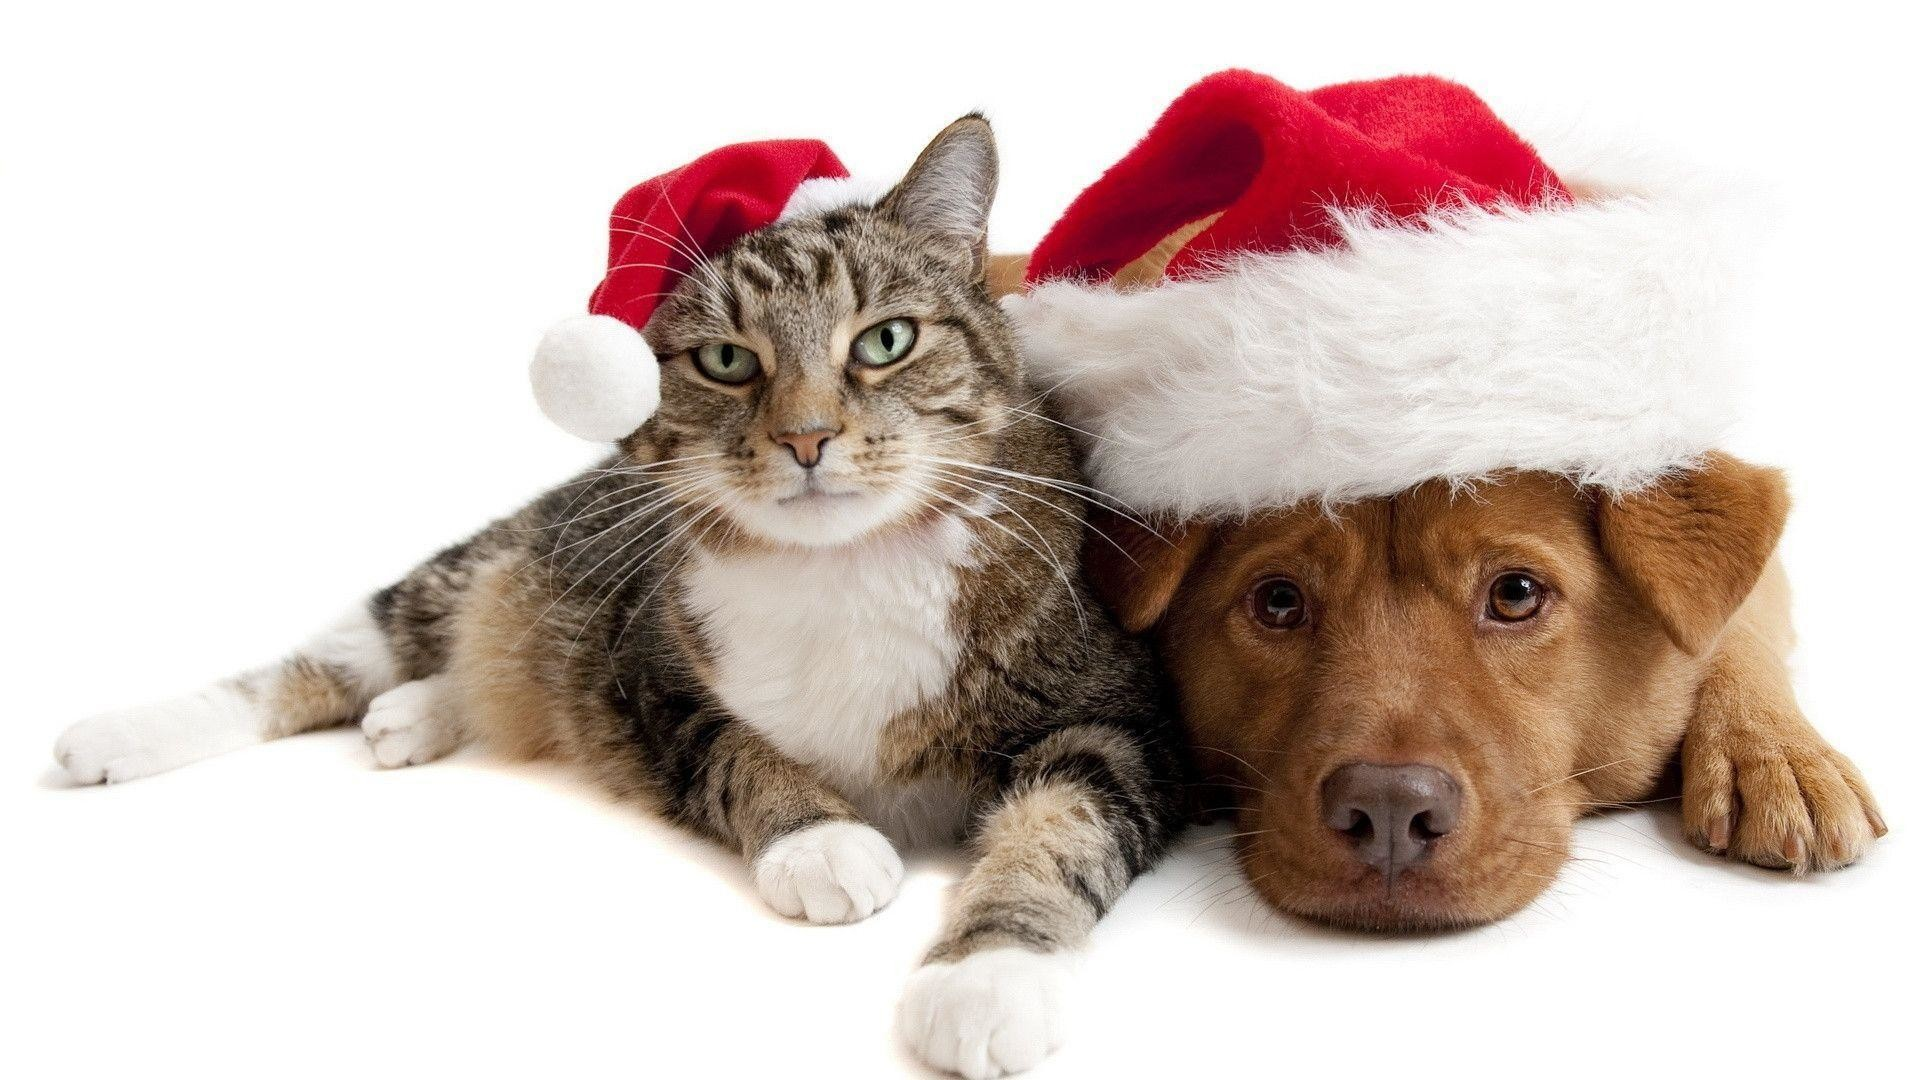 Cute Kittens and Dogs Christmas HD Wallpaper For Desktop .